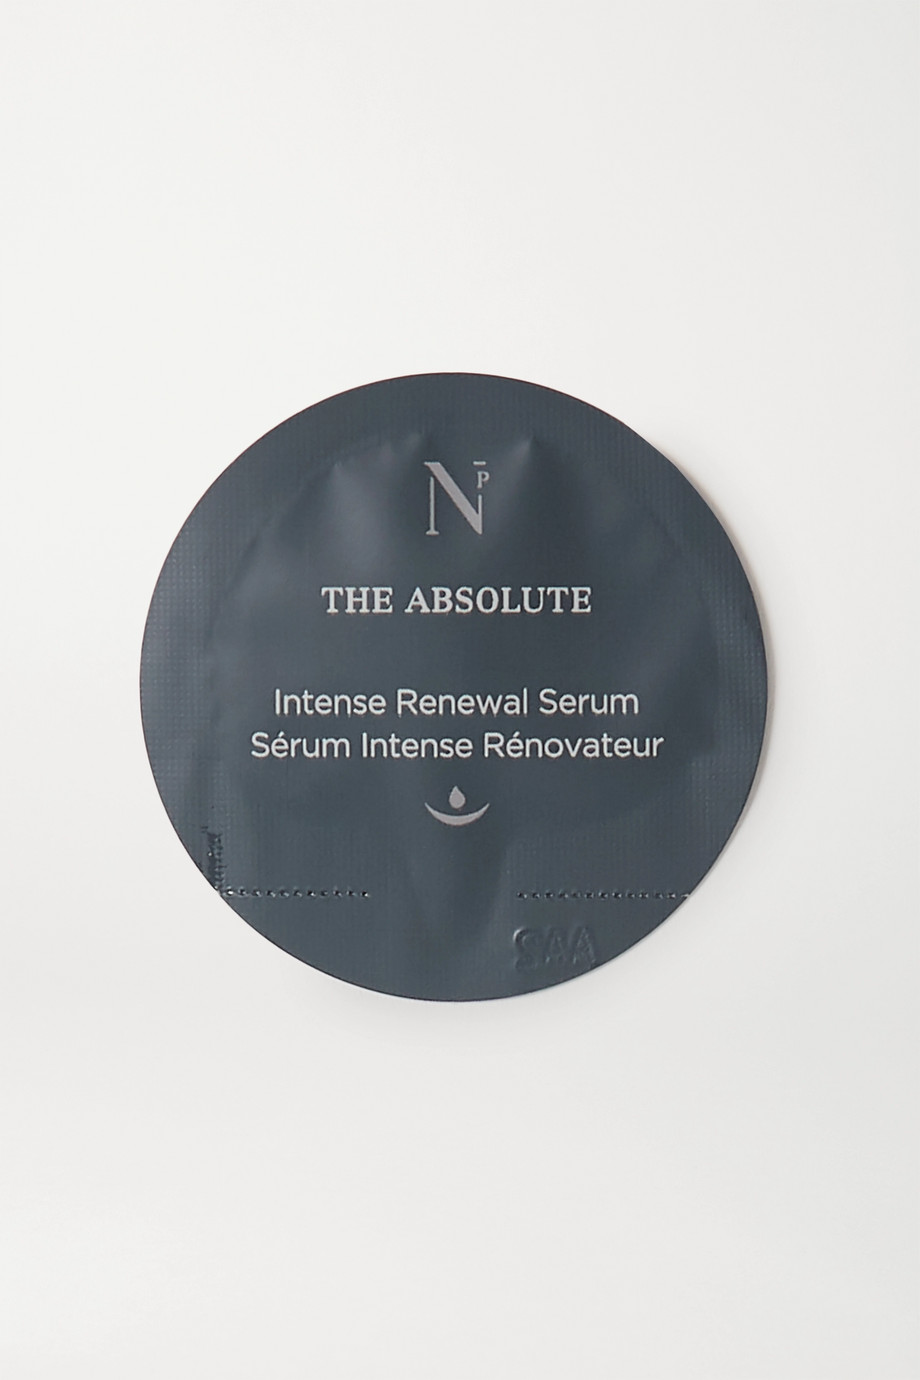 Noble Panacea The Absolute Intense Renewal Serum, 30 x 0.5ml